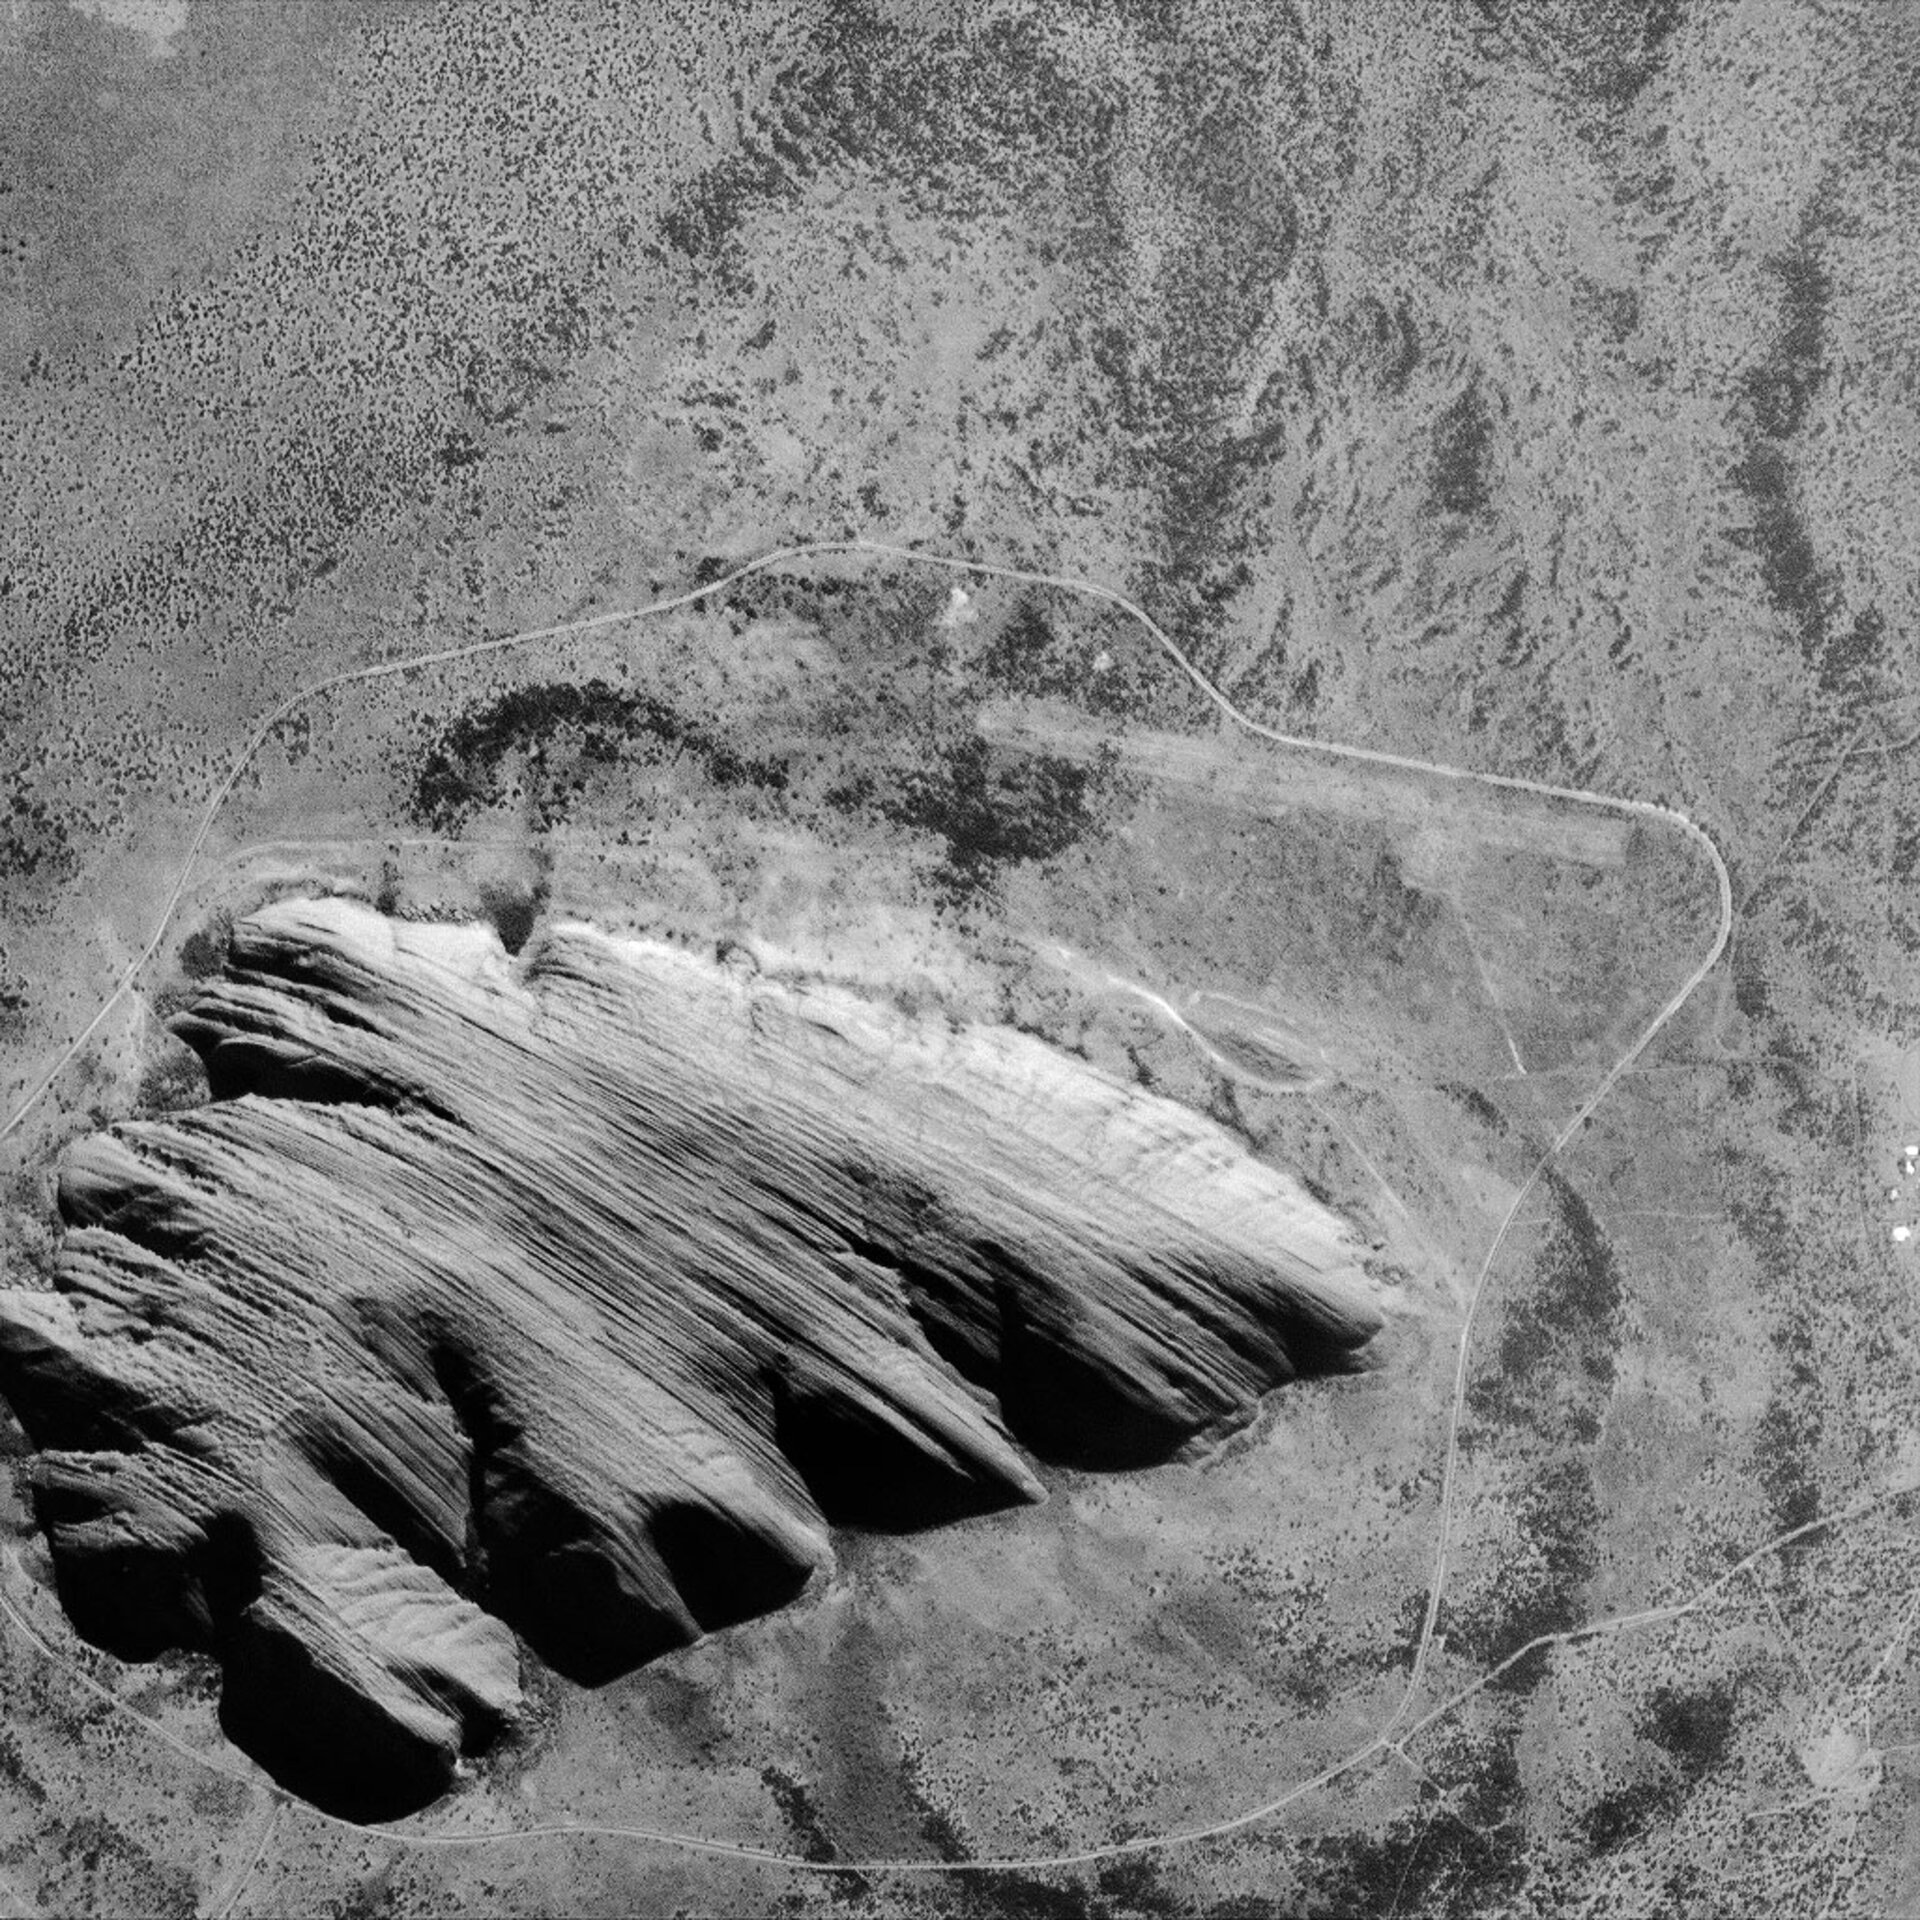 HRC image of Uluru or Ayers Rock